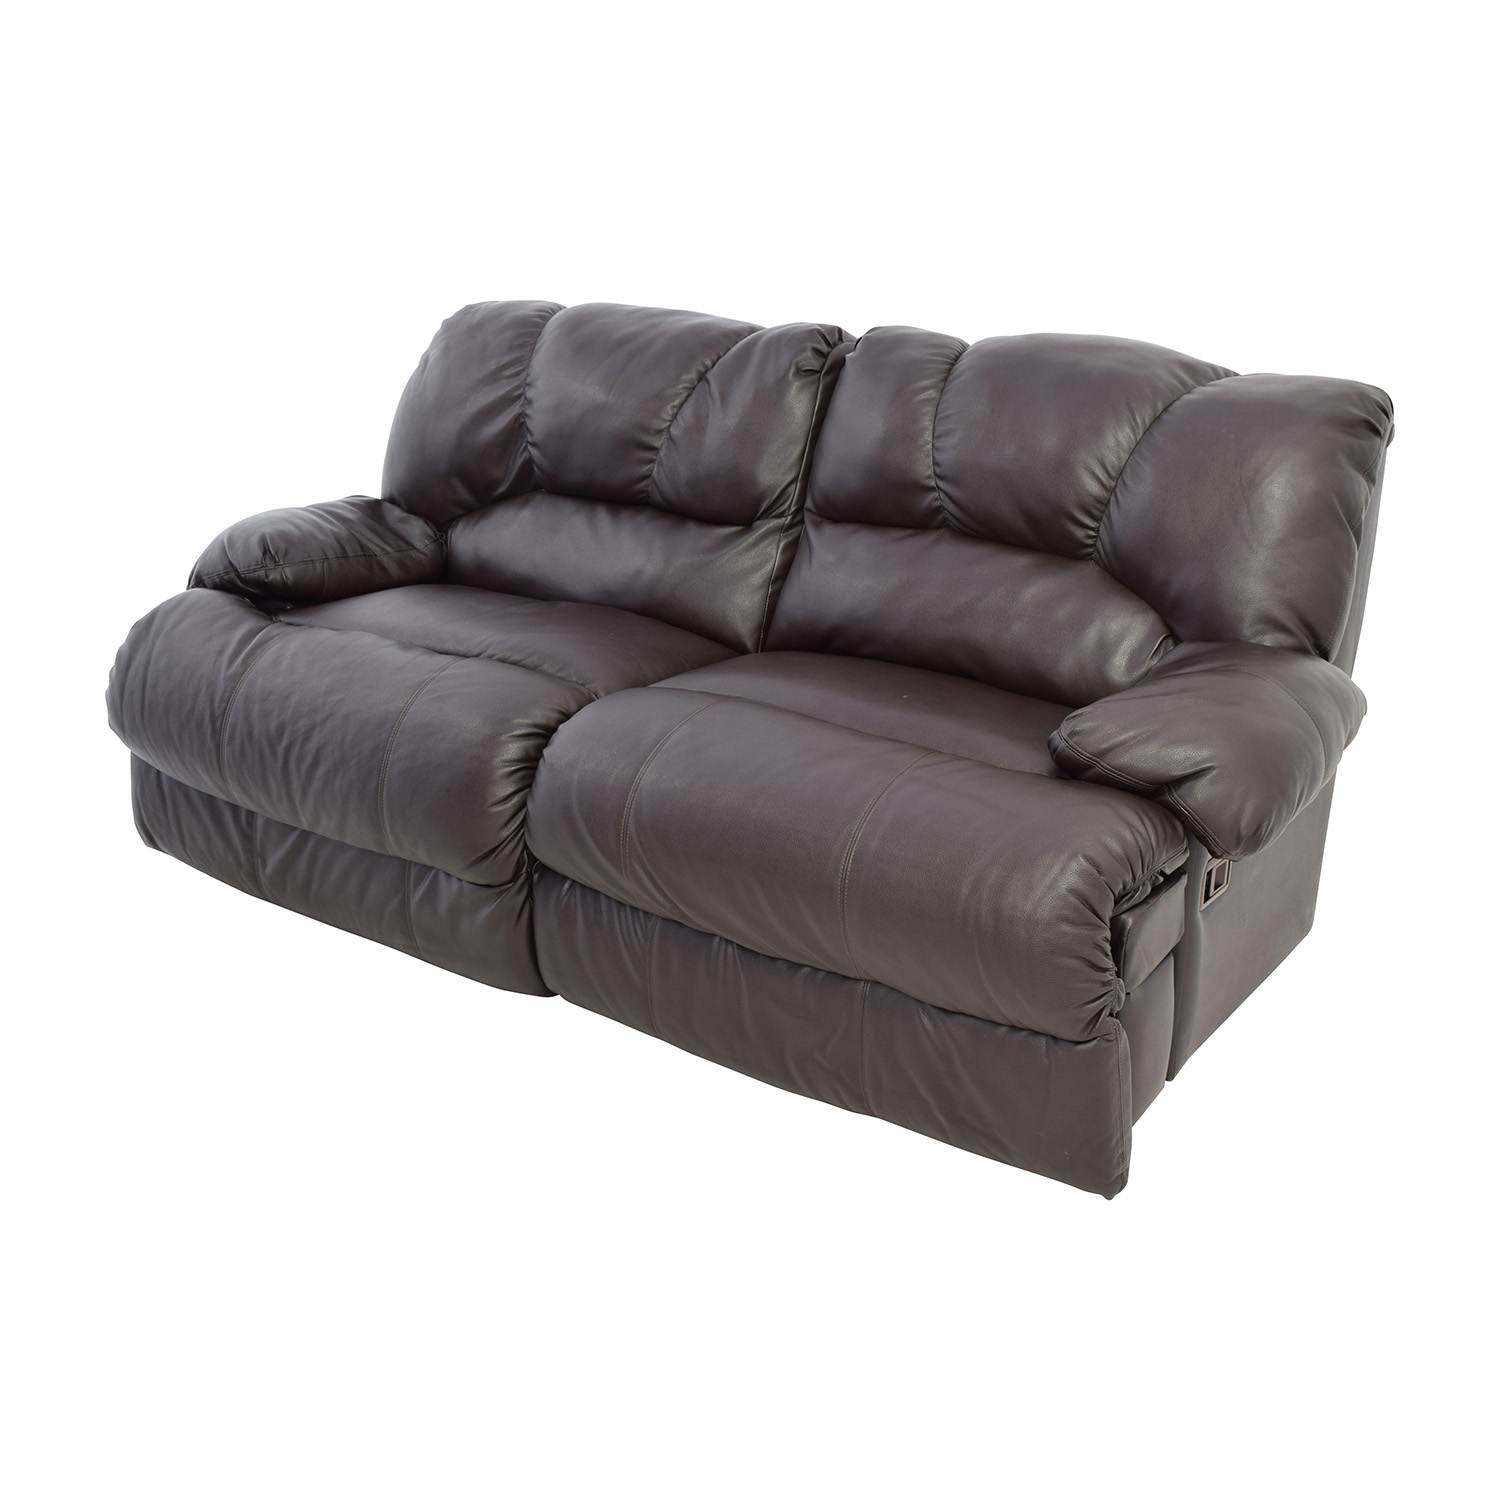 Nebraska Furniture Mart Reclining Brown Leather Couch sale